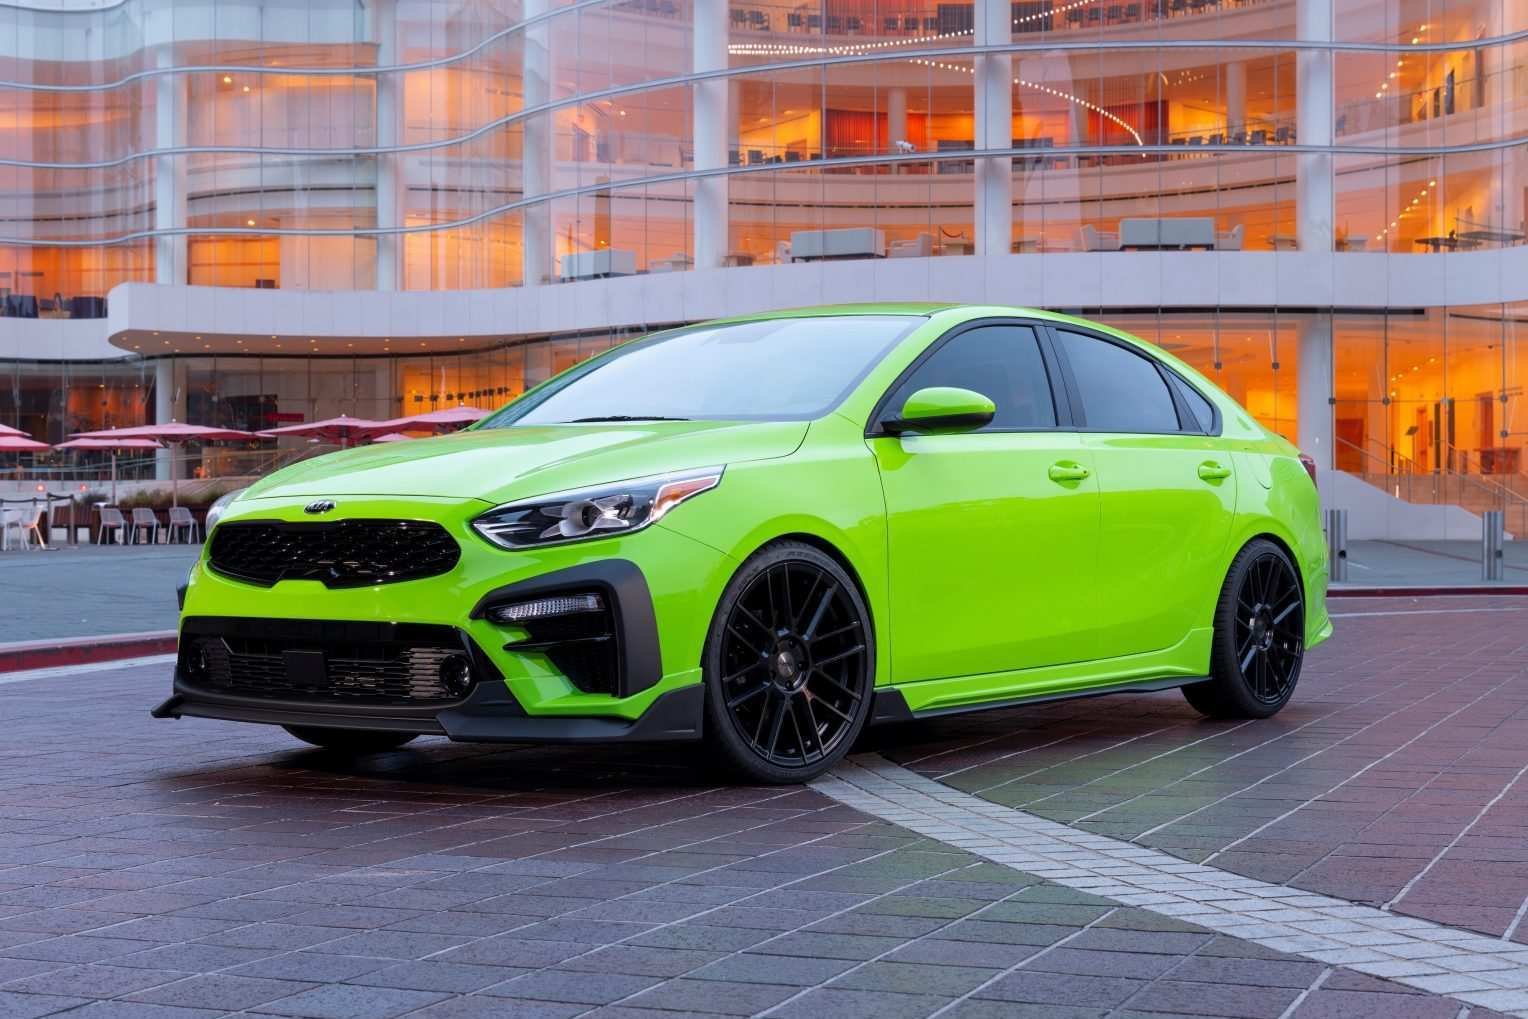 82 A 2020 Kia Forte Wallpaper